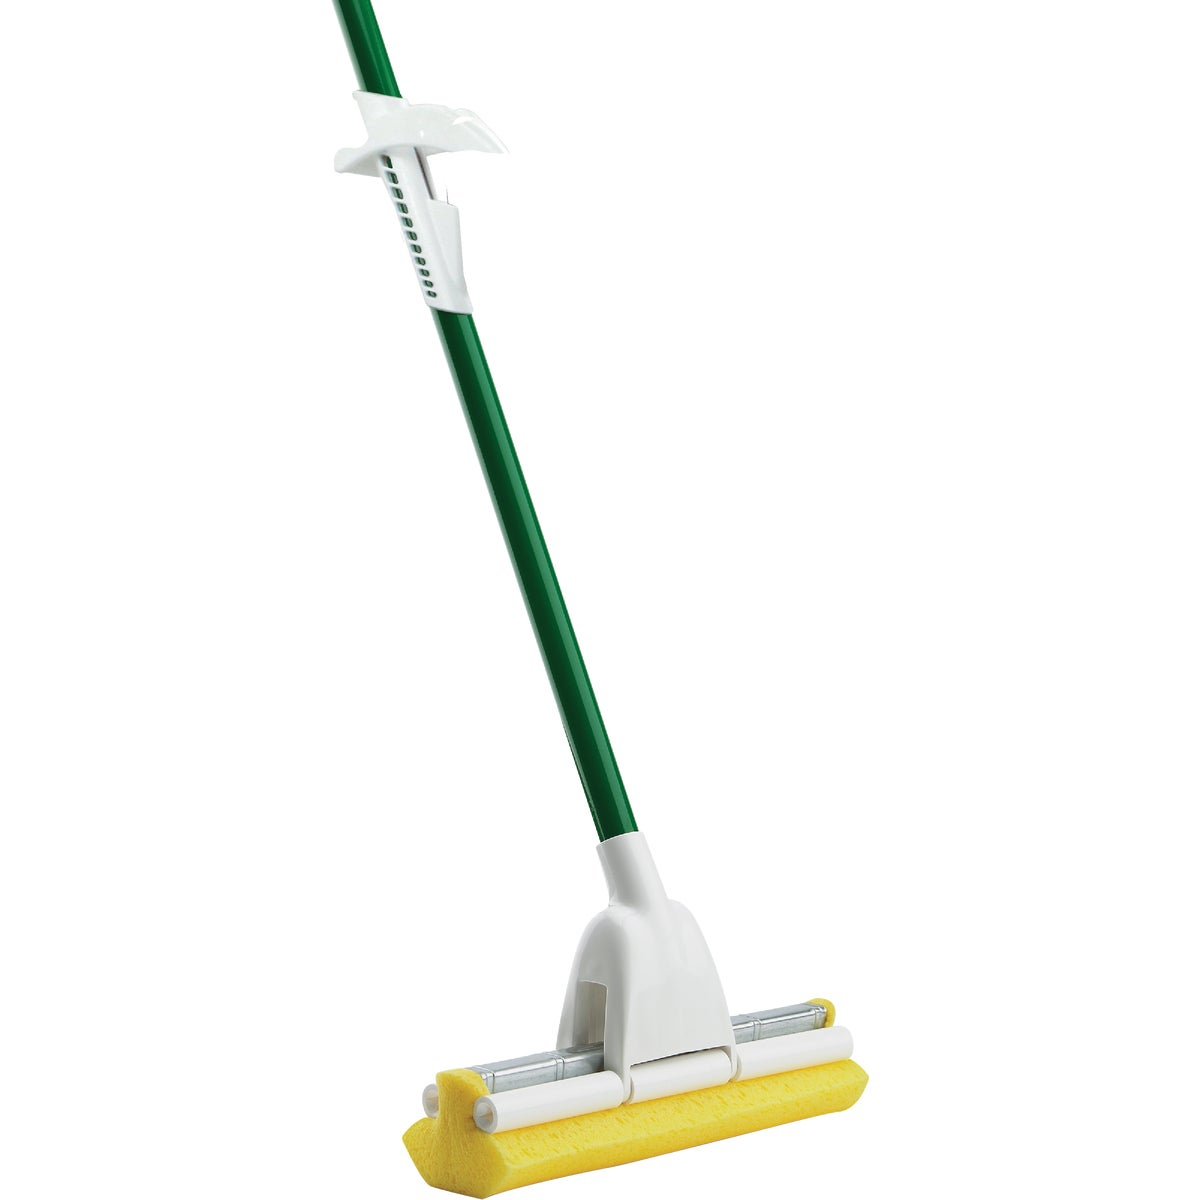 FAST N EASY ROLLER MOP - 133916 by F H P-lp